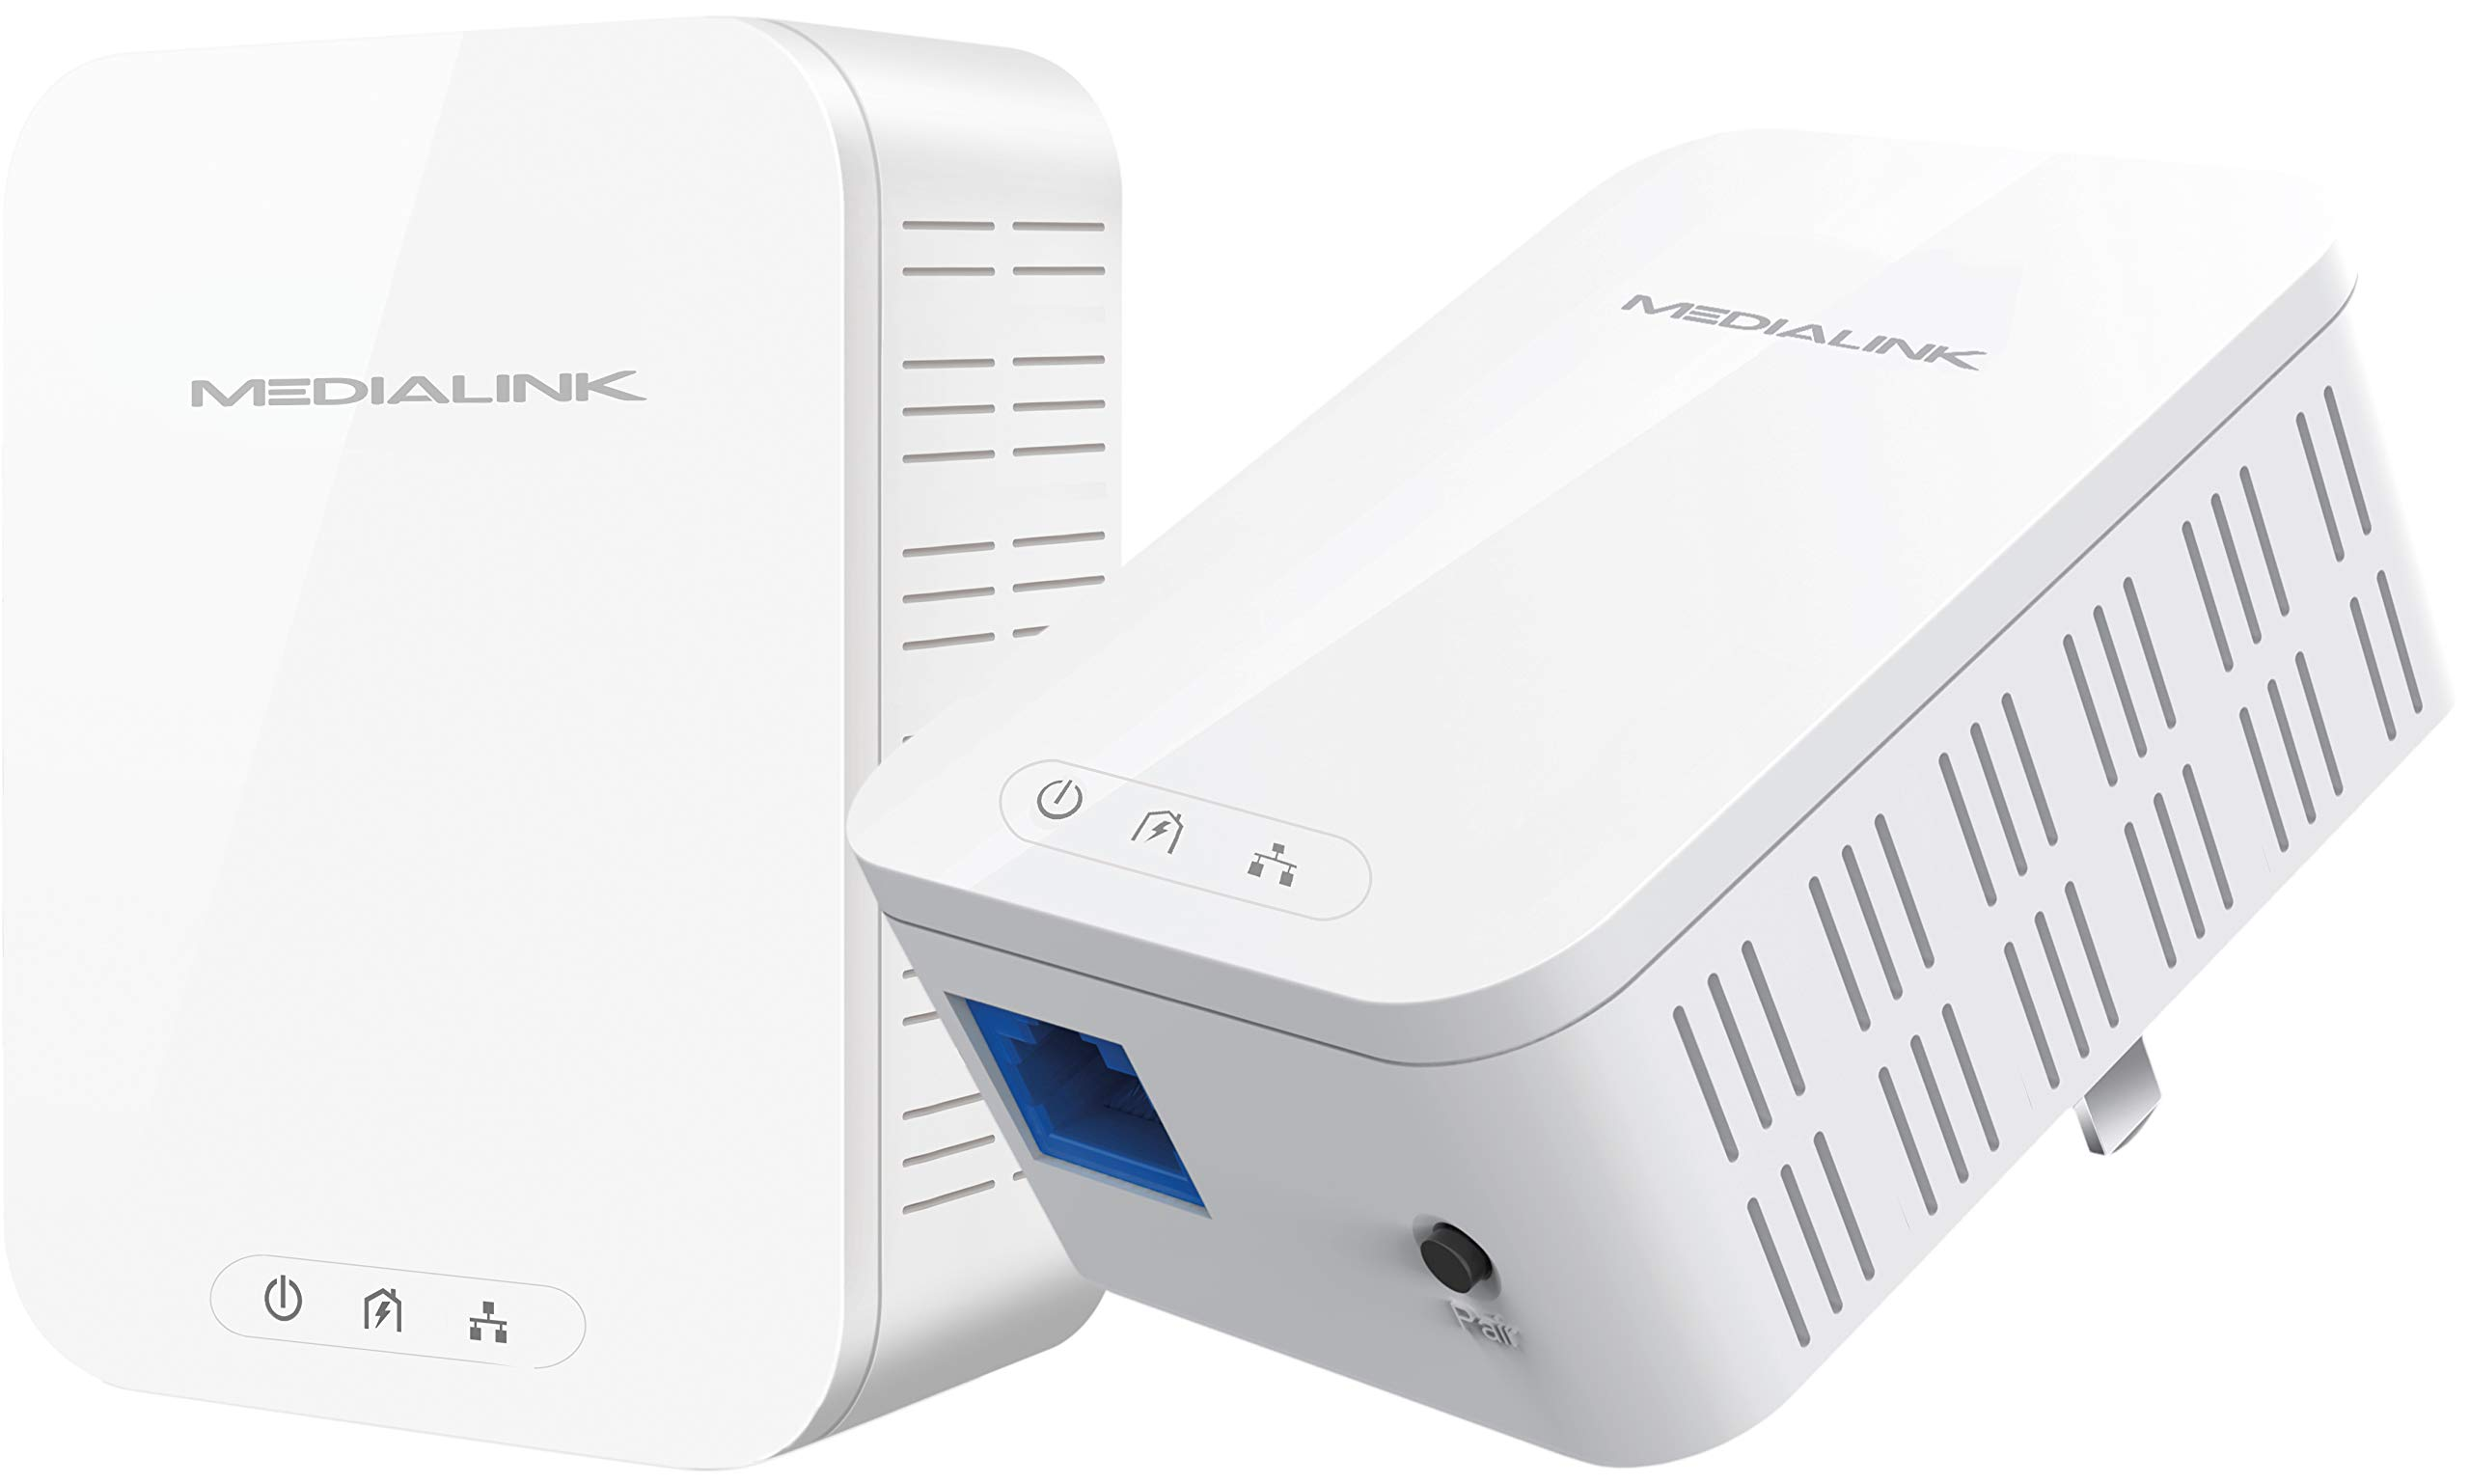 Medialink Gigabit Powerline Adapter Kit (2 Units) - Ethernet Homeplug with Gigabit (1000 Mbps) Wired Speed (Part# MPLA-1000X2) by Mediabridge